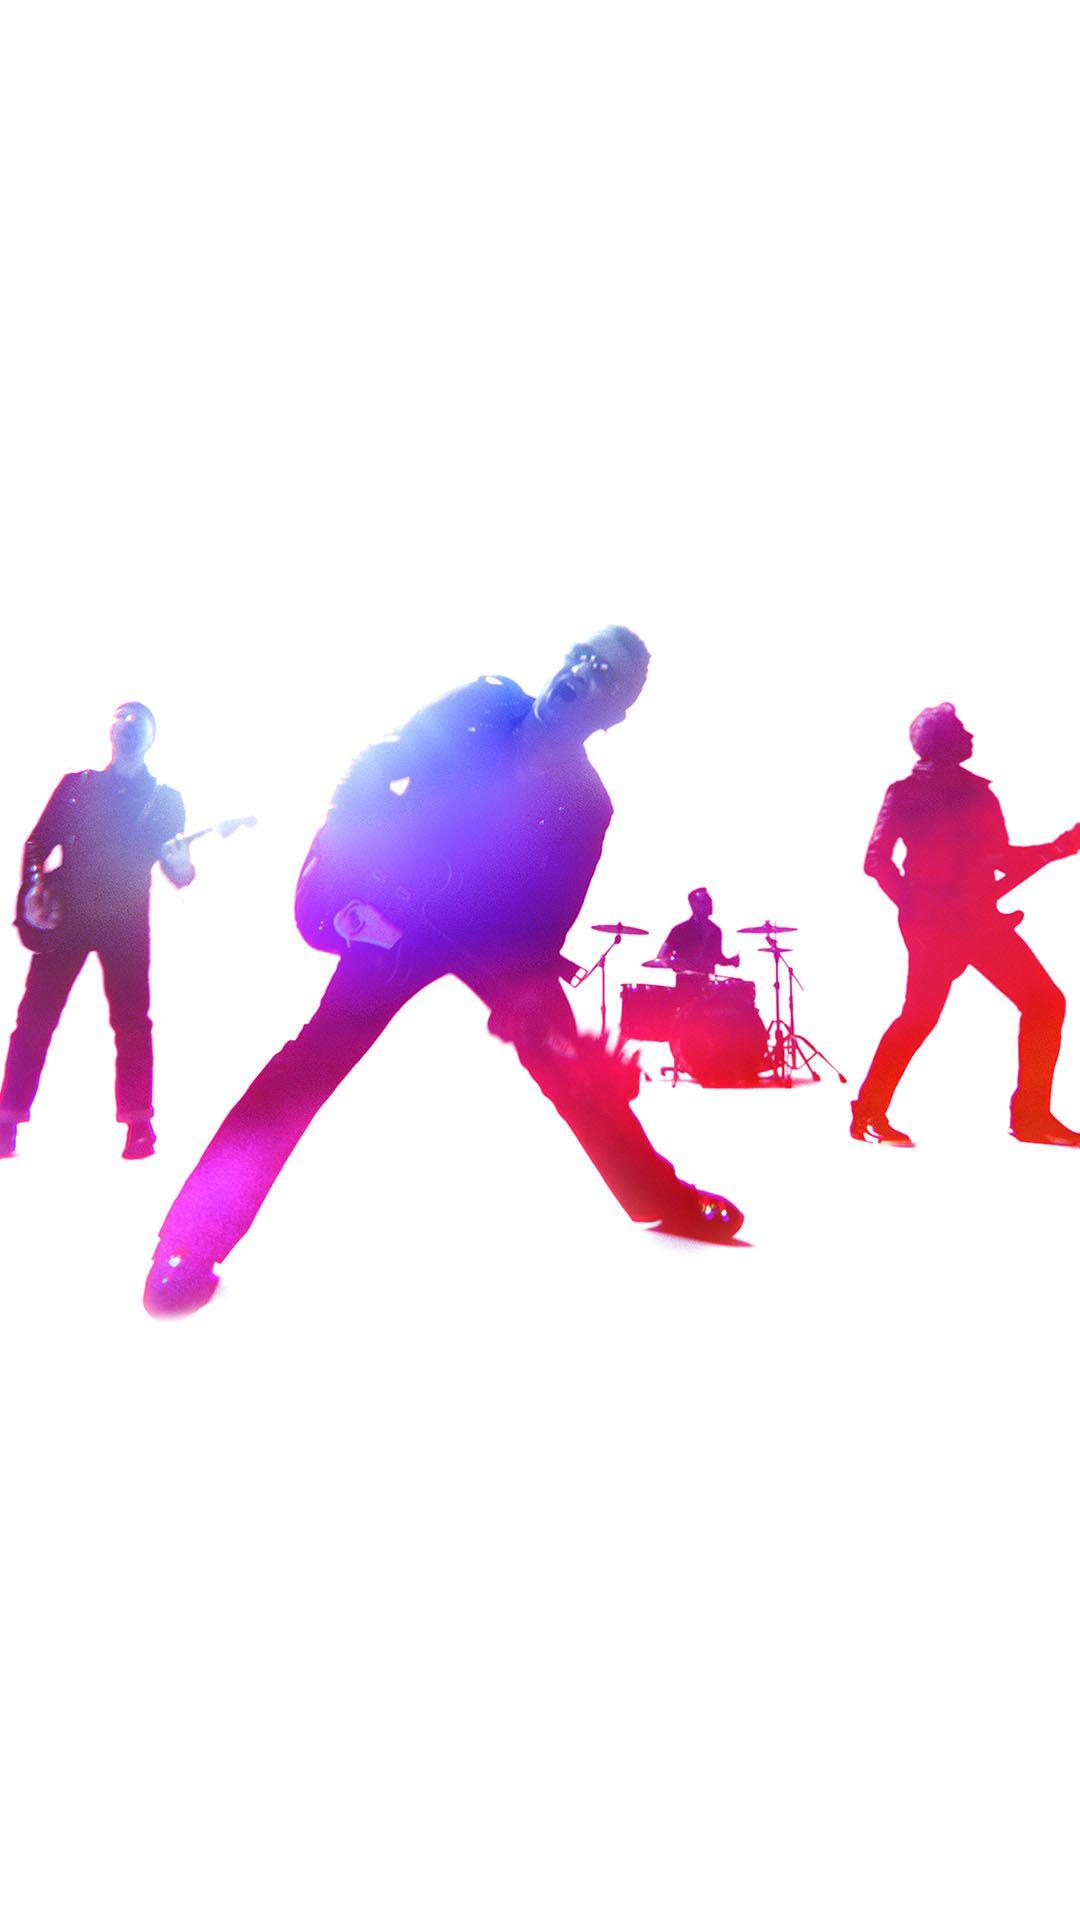 U2 Band Colorful Concert Android Wallpapers free download